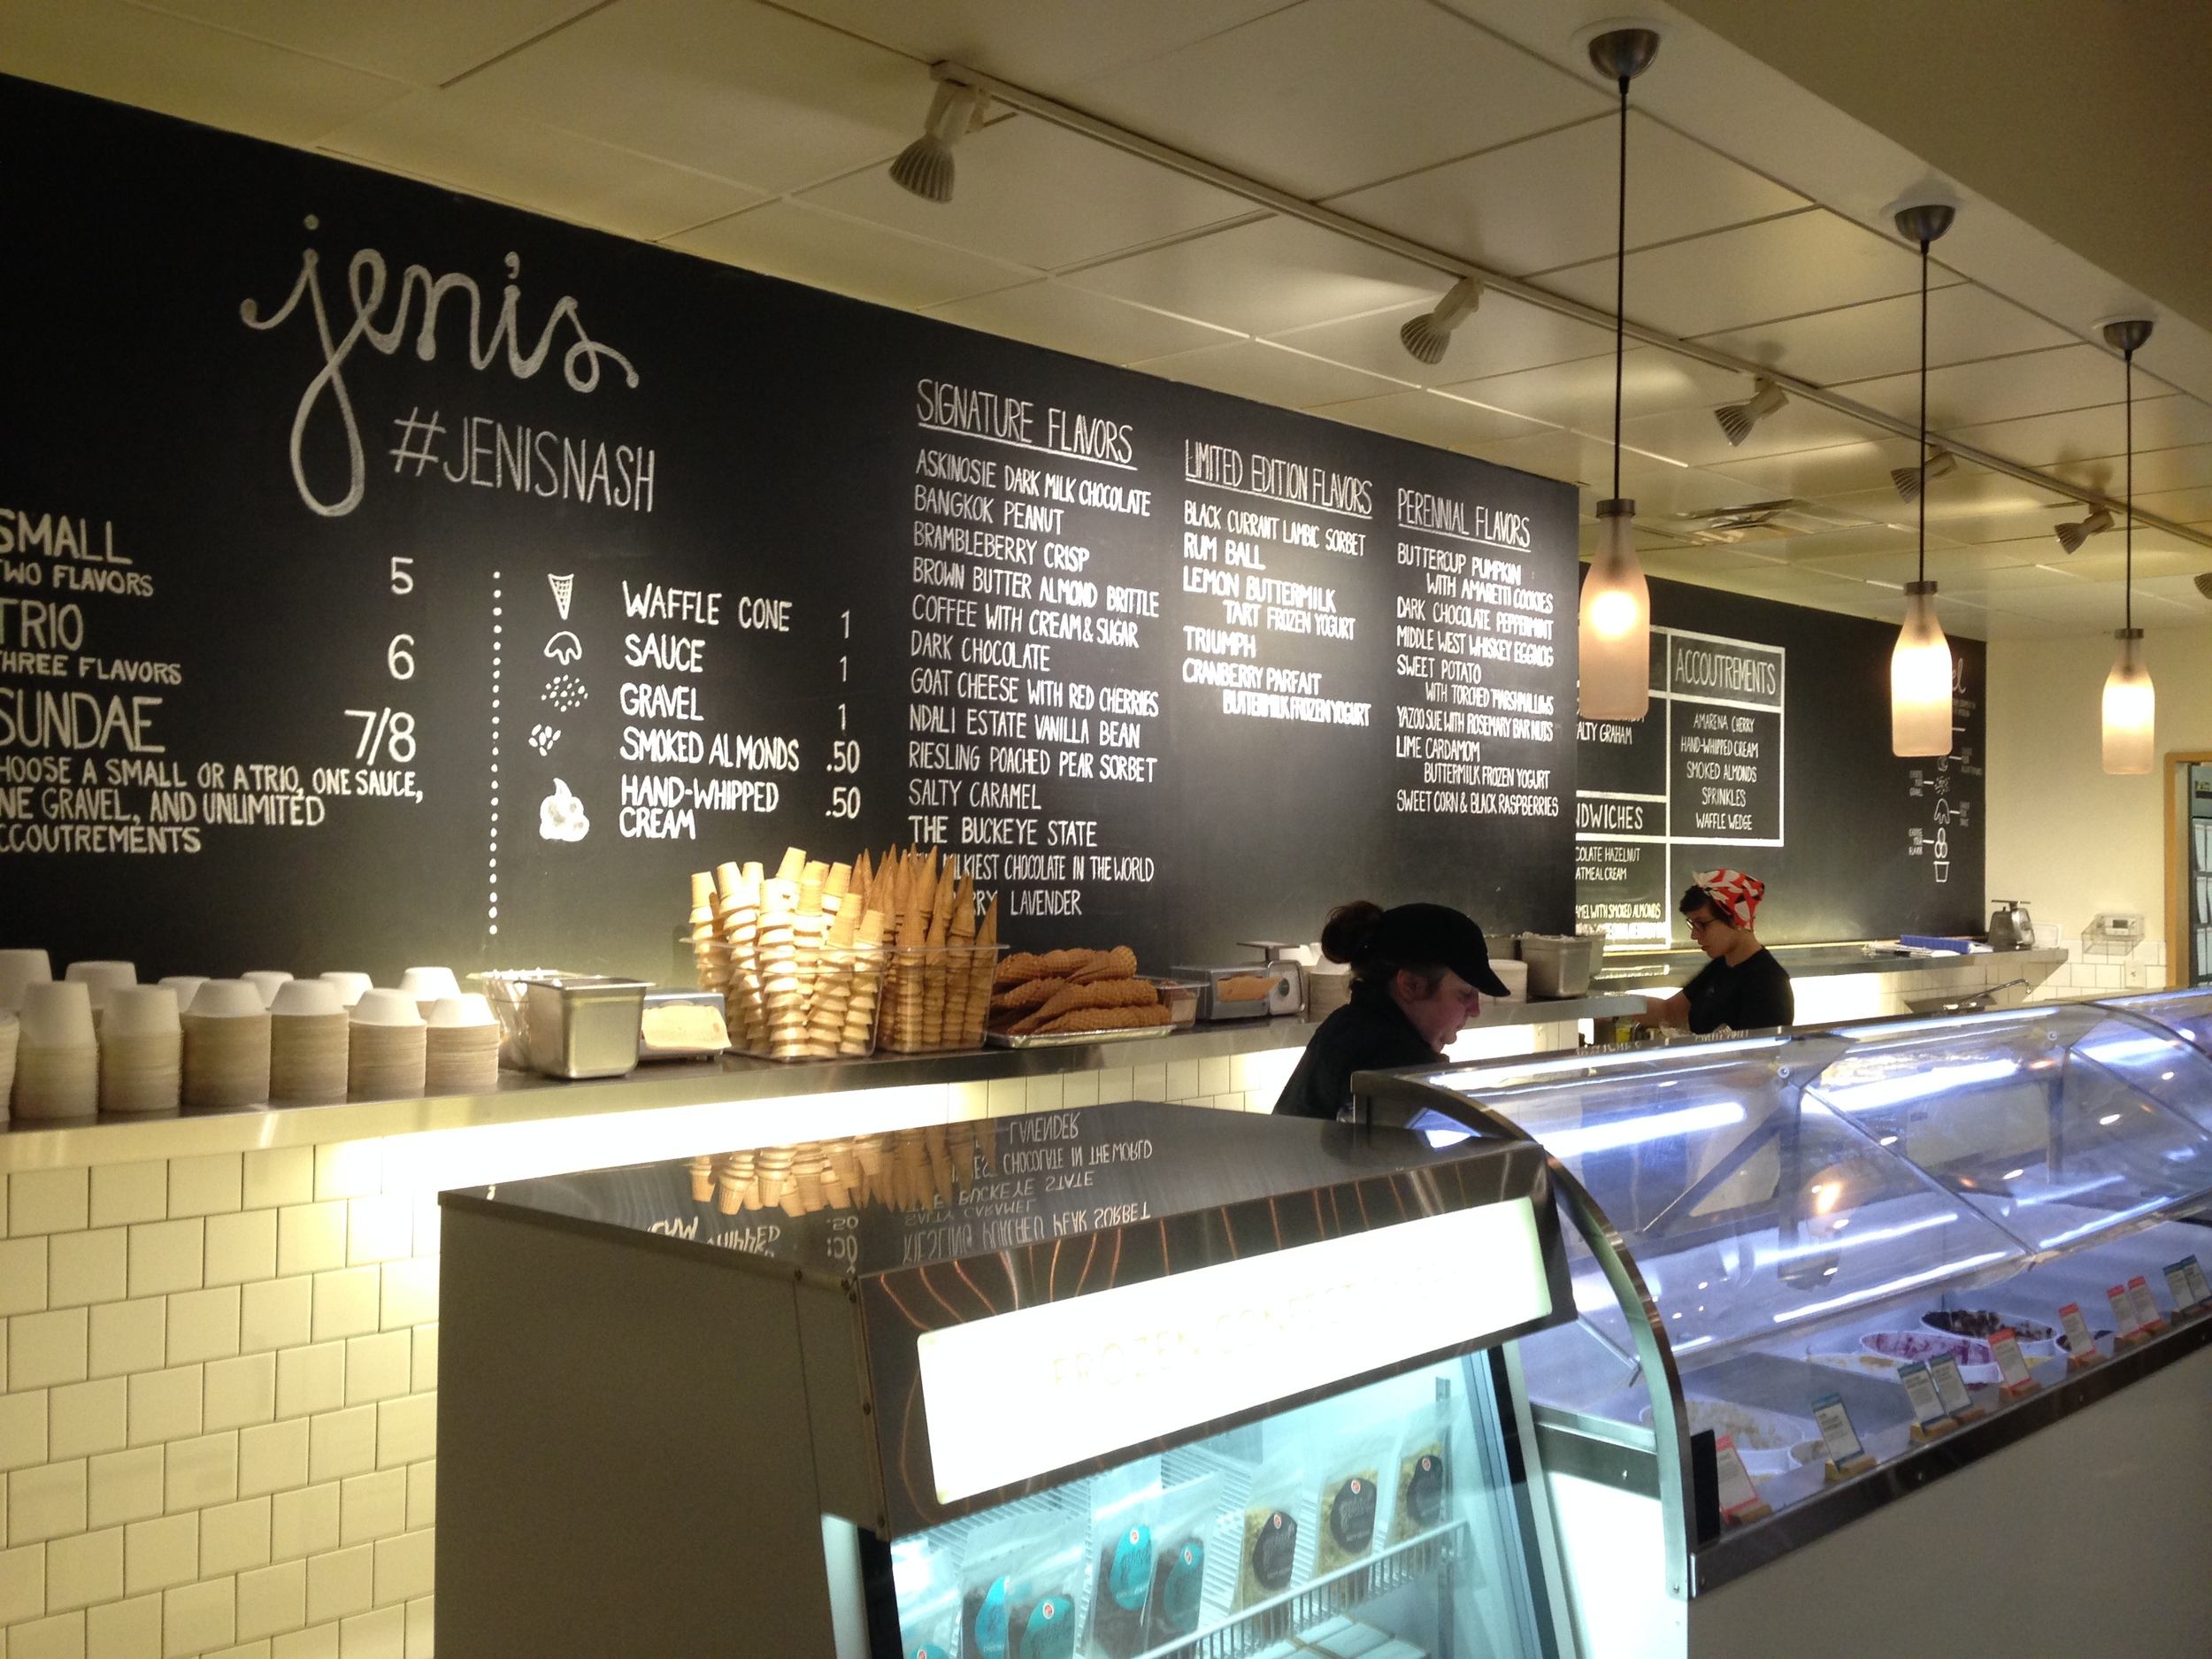 Jenis Ice Cream, Nashville